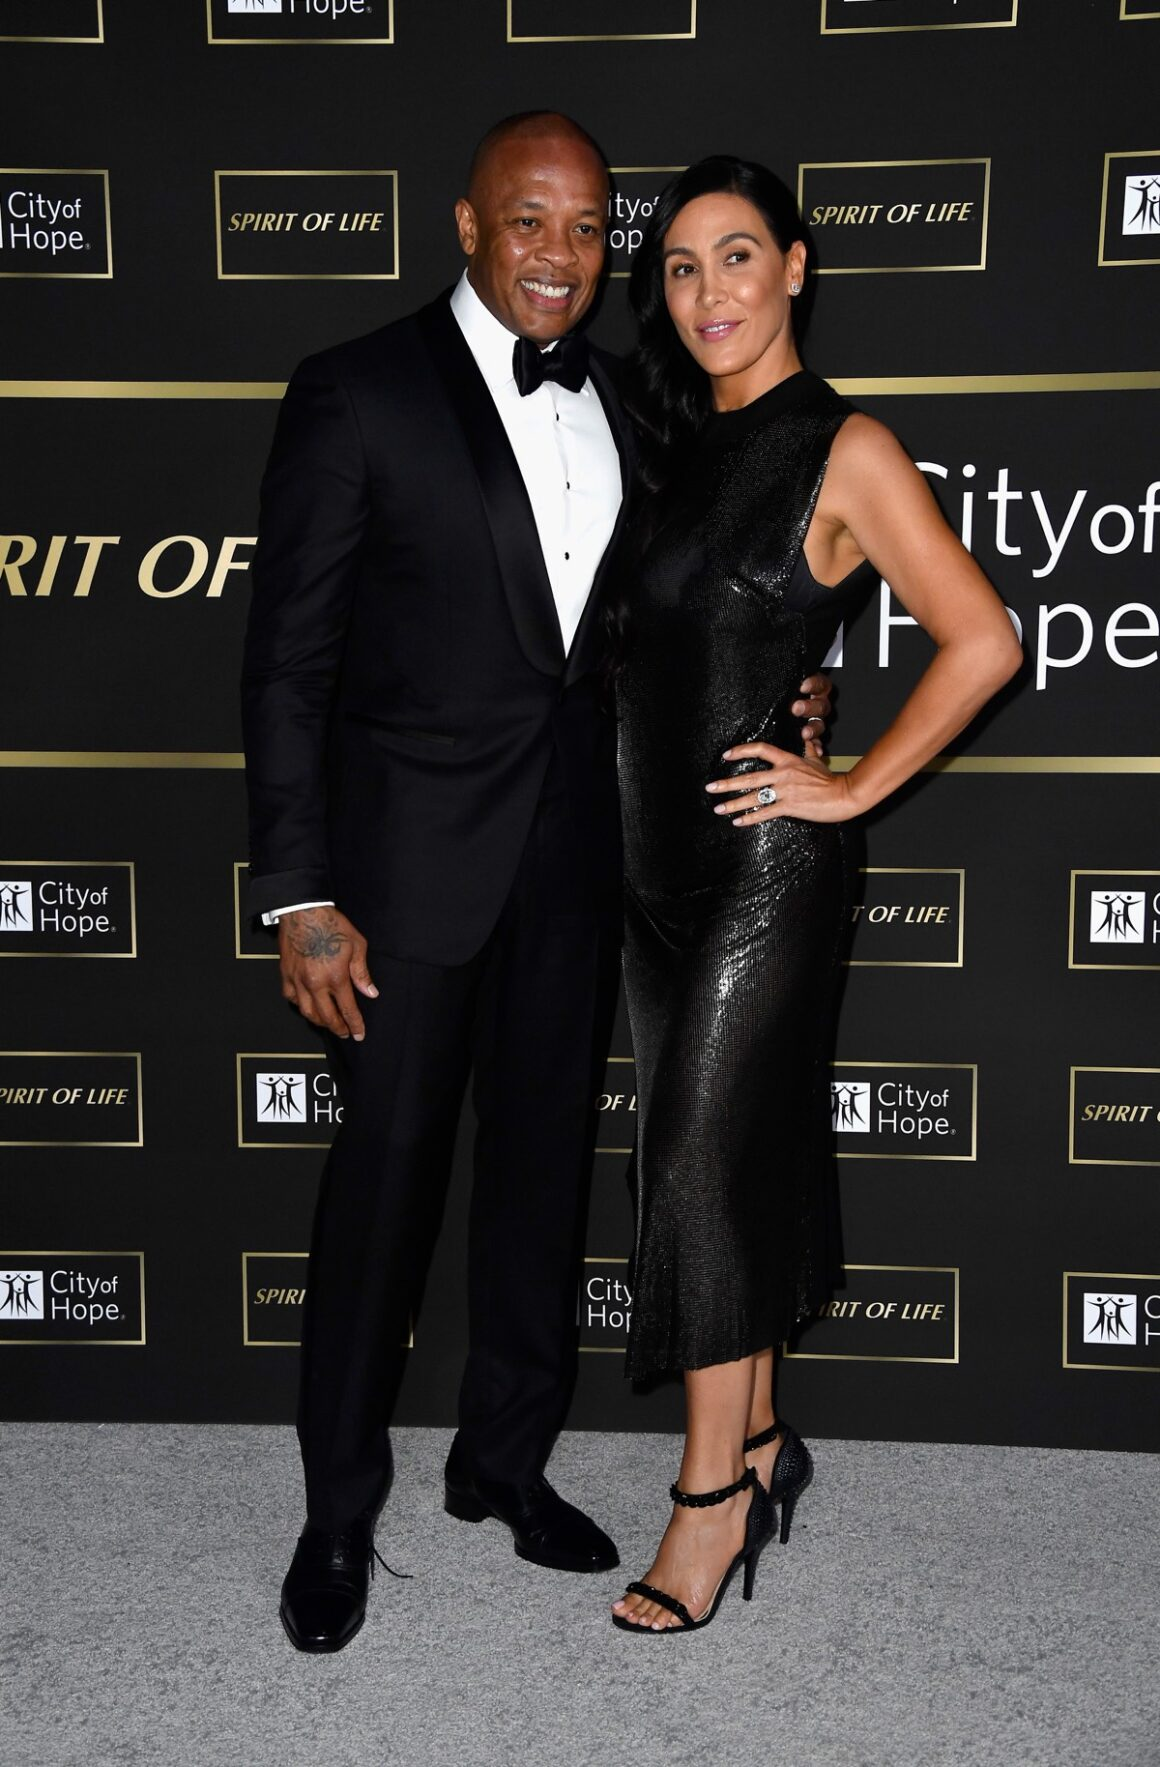 Dr. Dre's and Nicole Young City of Hope Spirit of Life Gala 2018 - Arrivals